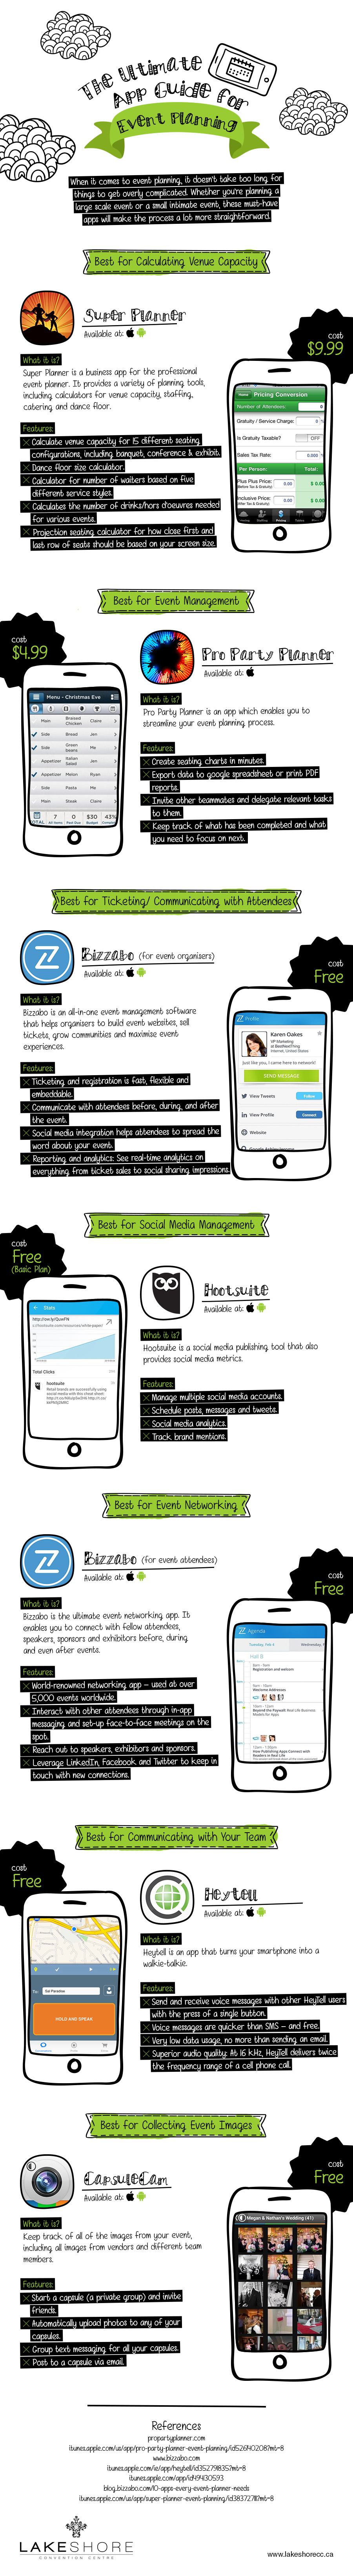 The-Ultimate-App-Guide-for-Event-Planning-Infographic